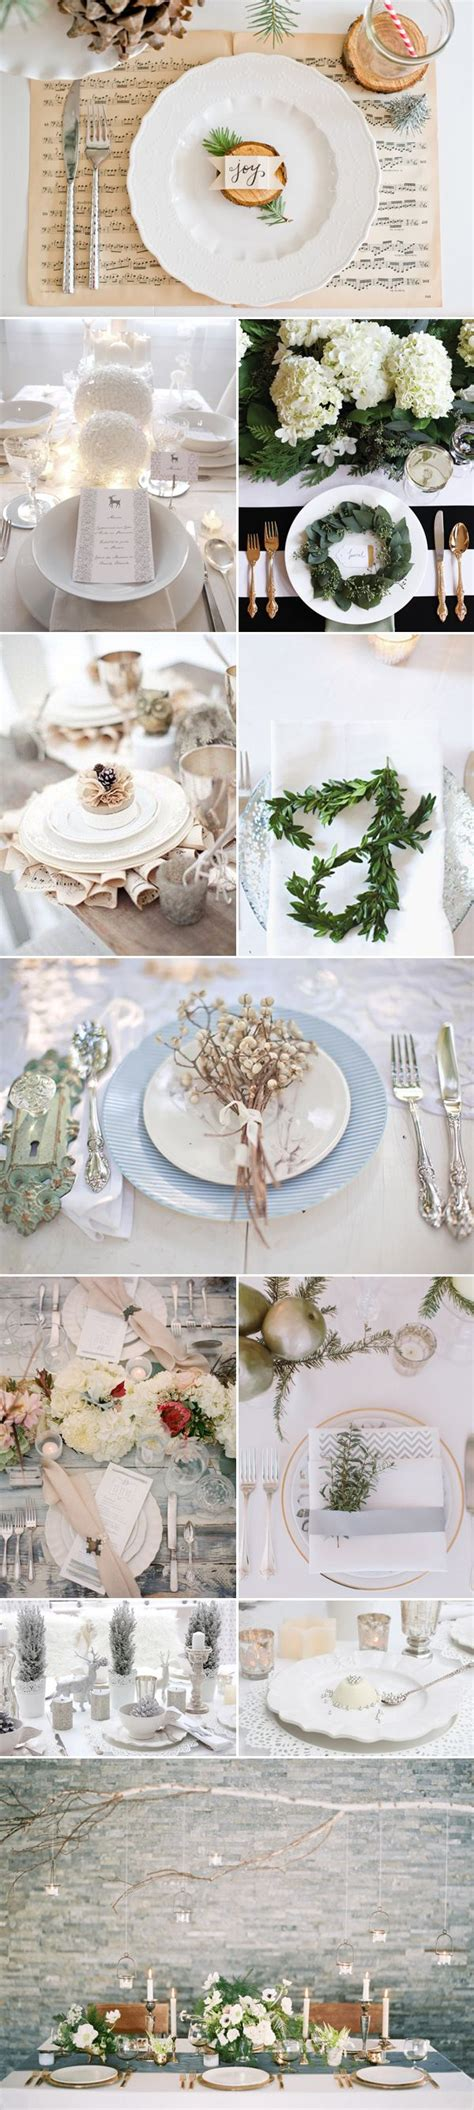 1000 ideas about formal table settings on pinterest 1000 ideas about table place settings on pinterest